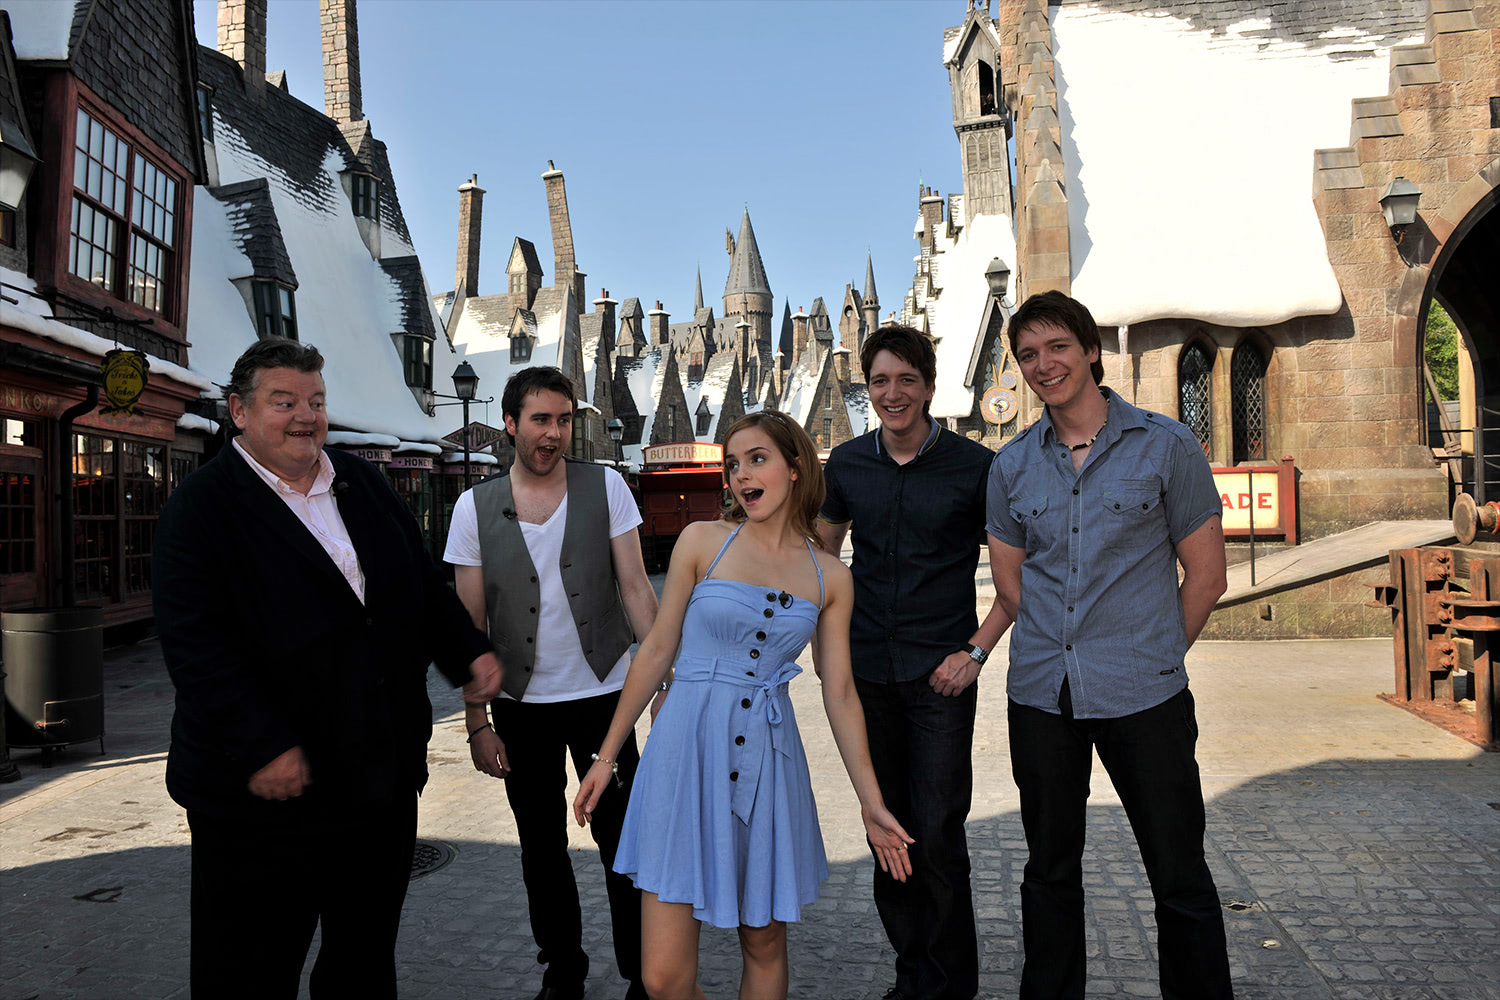 James and Oliver Phelps, Robbie Coltrane, Emma Watson and Matthew Lewis at the 'Harry Potter' theme park